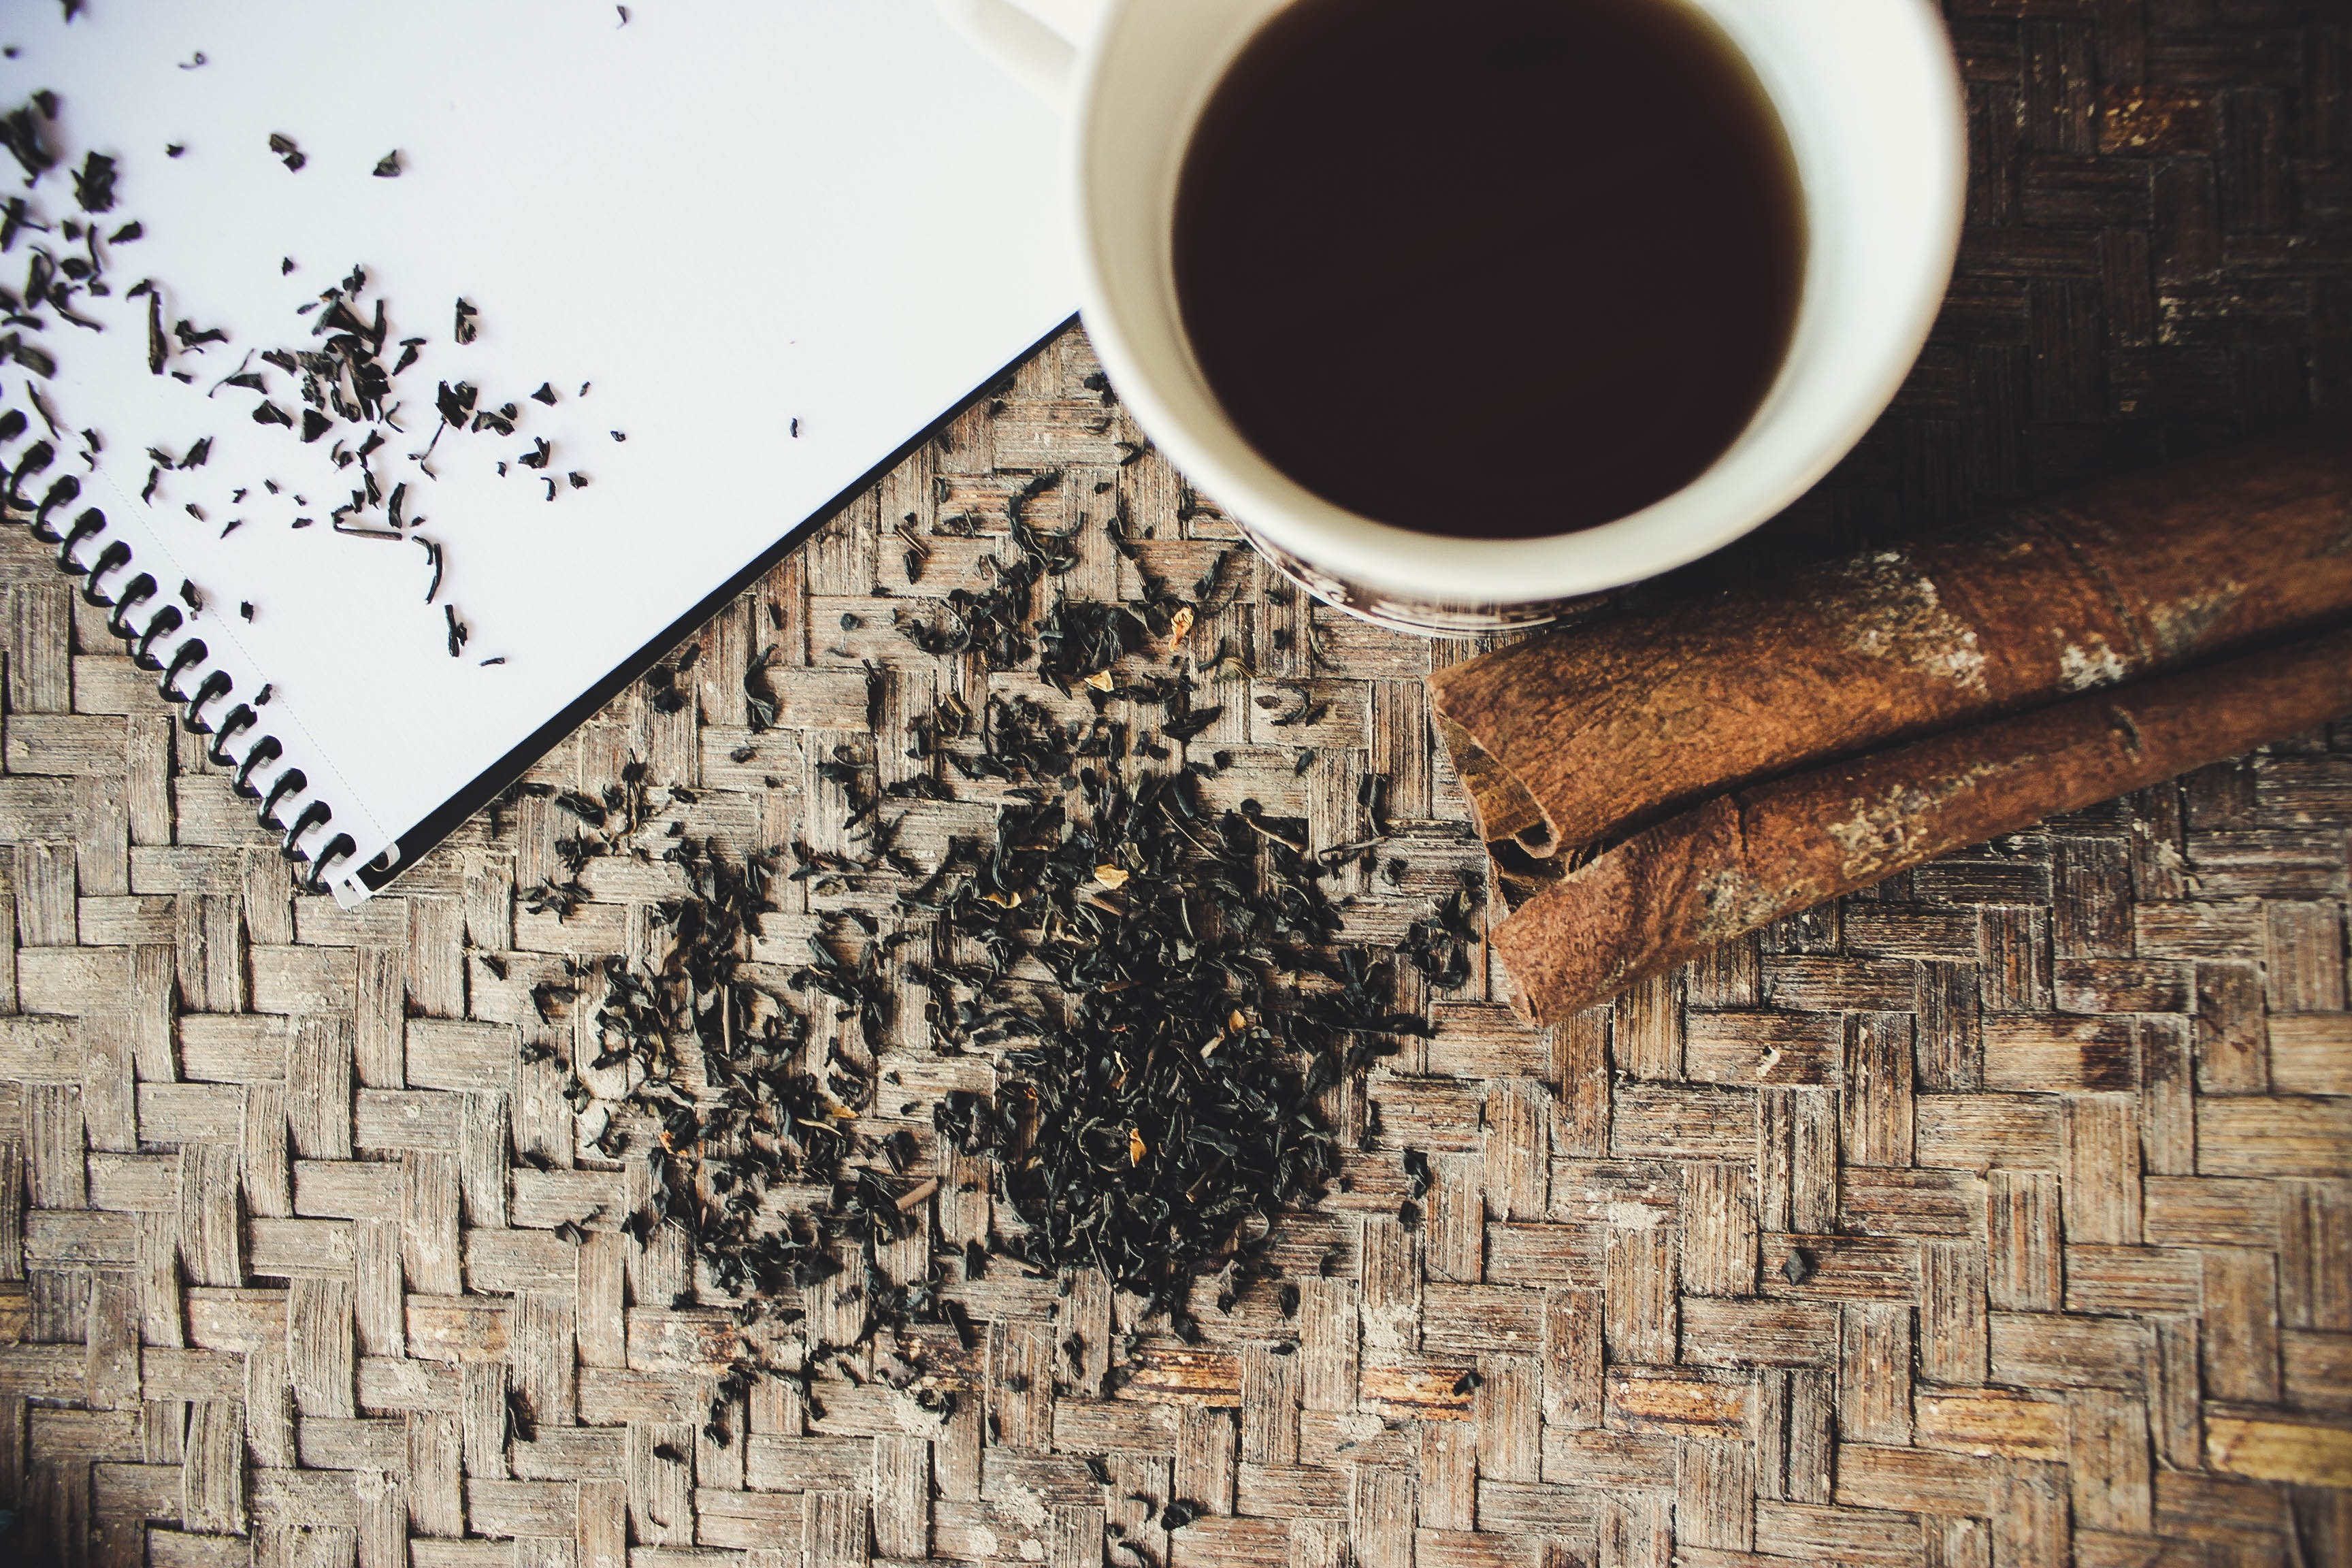 Free stock photo of cinnamon, coffee, drinks, eye glasses